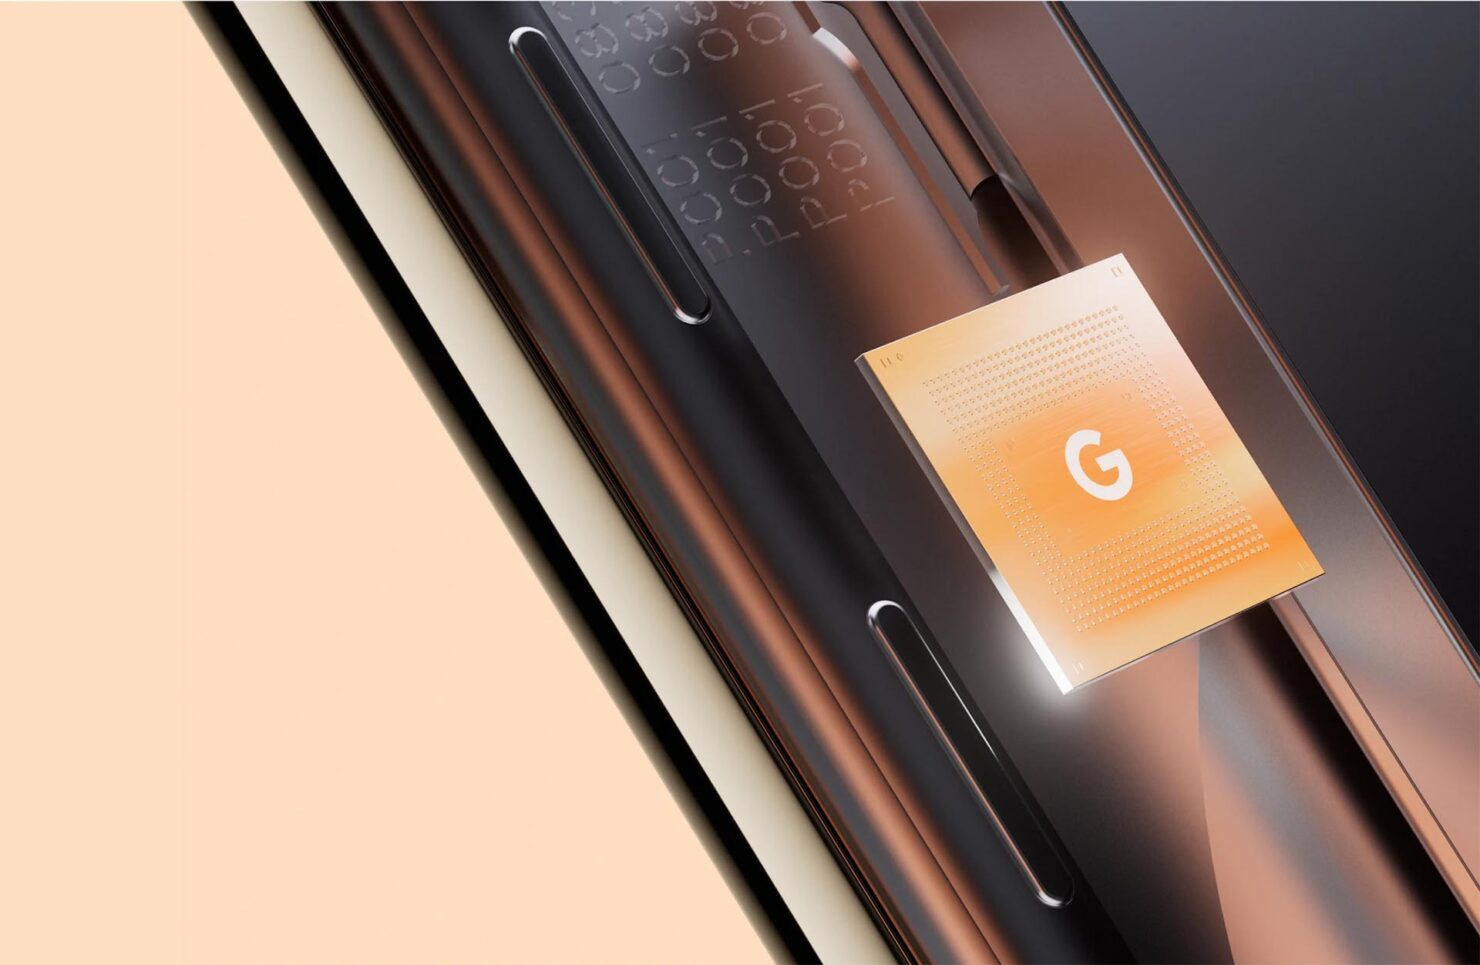 Samsung to Mass Produce Google's Tensor Chip, With Some Orders Possibly Going to TSMC